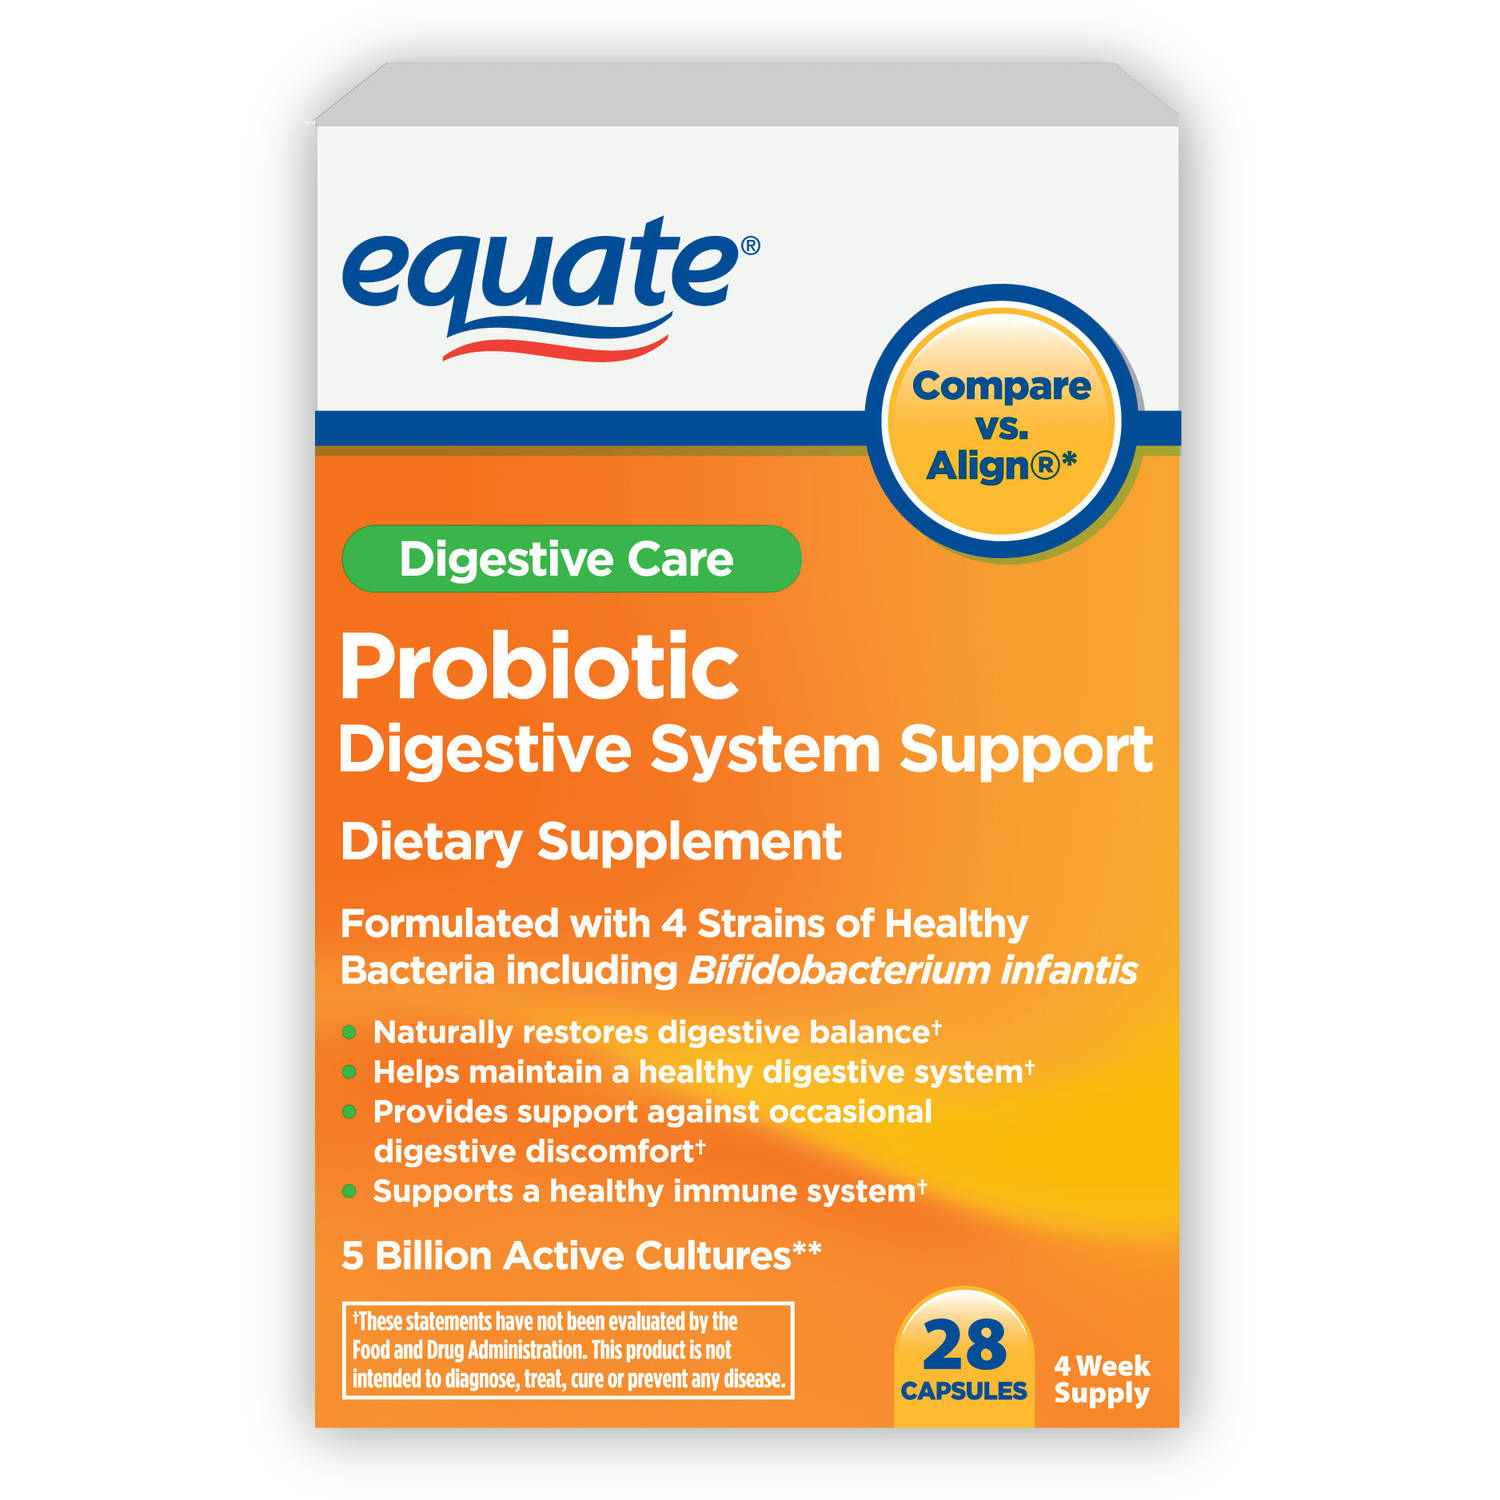 Equate Probiotic Digestive System Support Capsules, 28 count